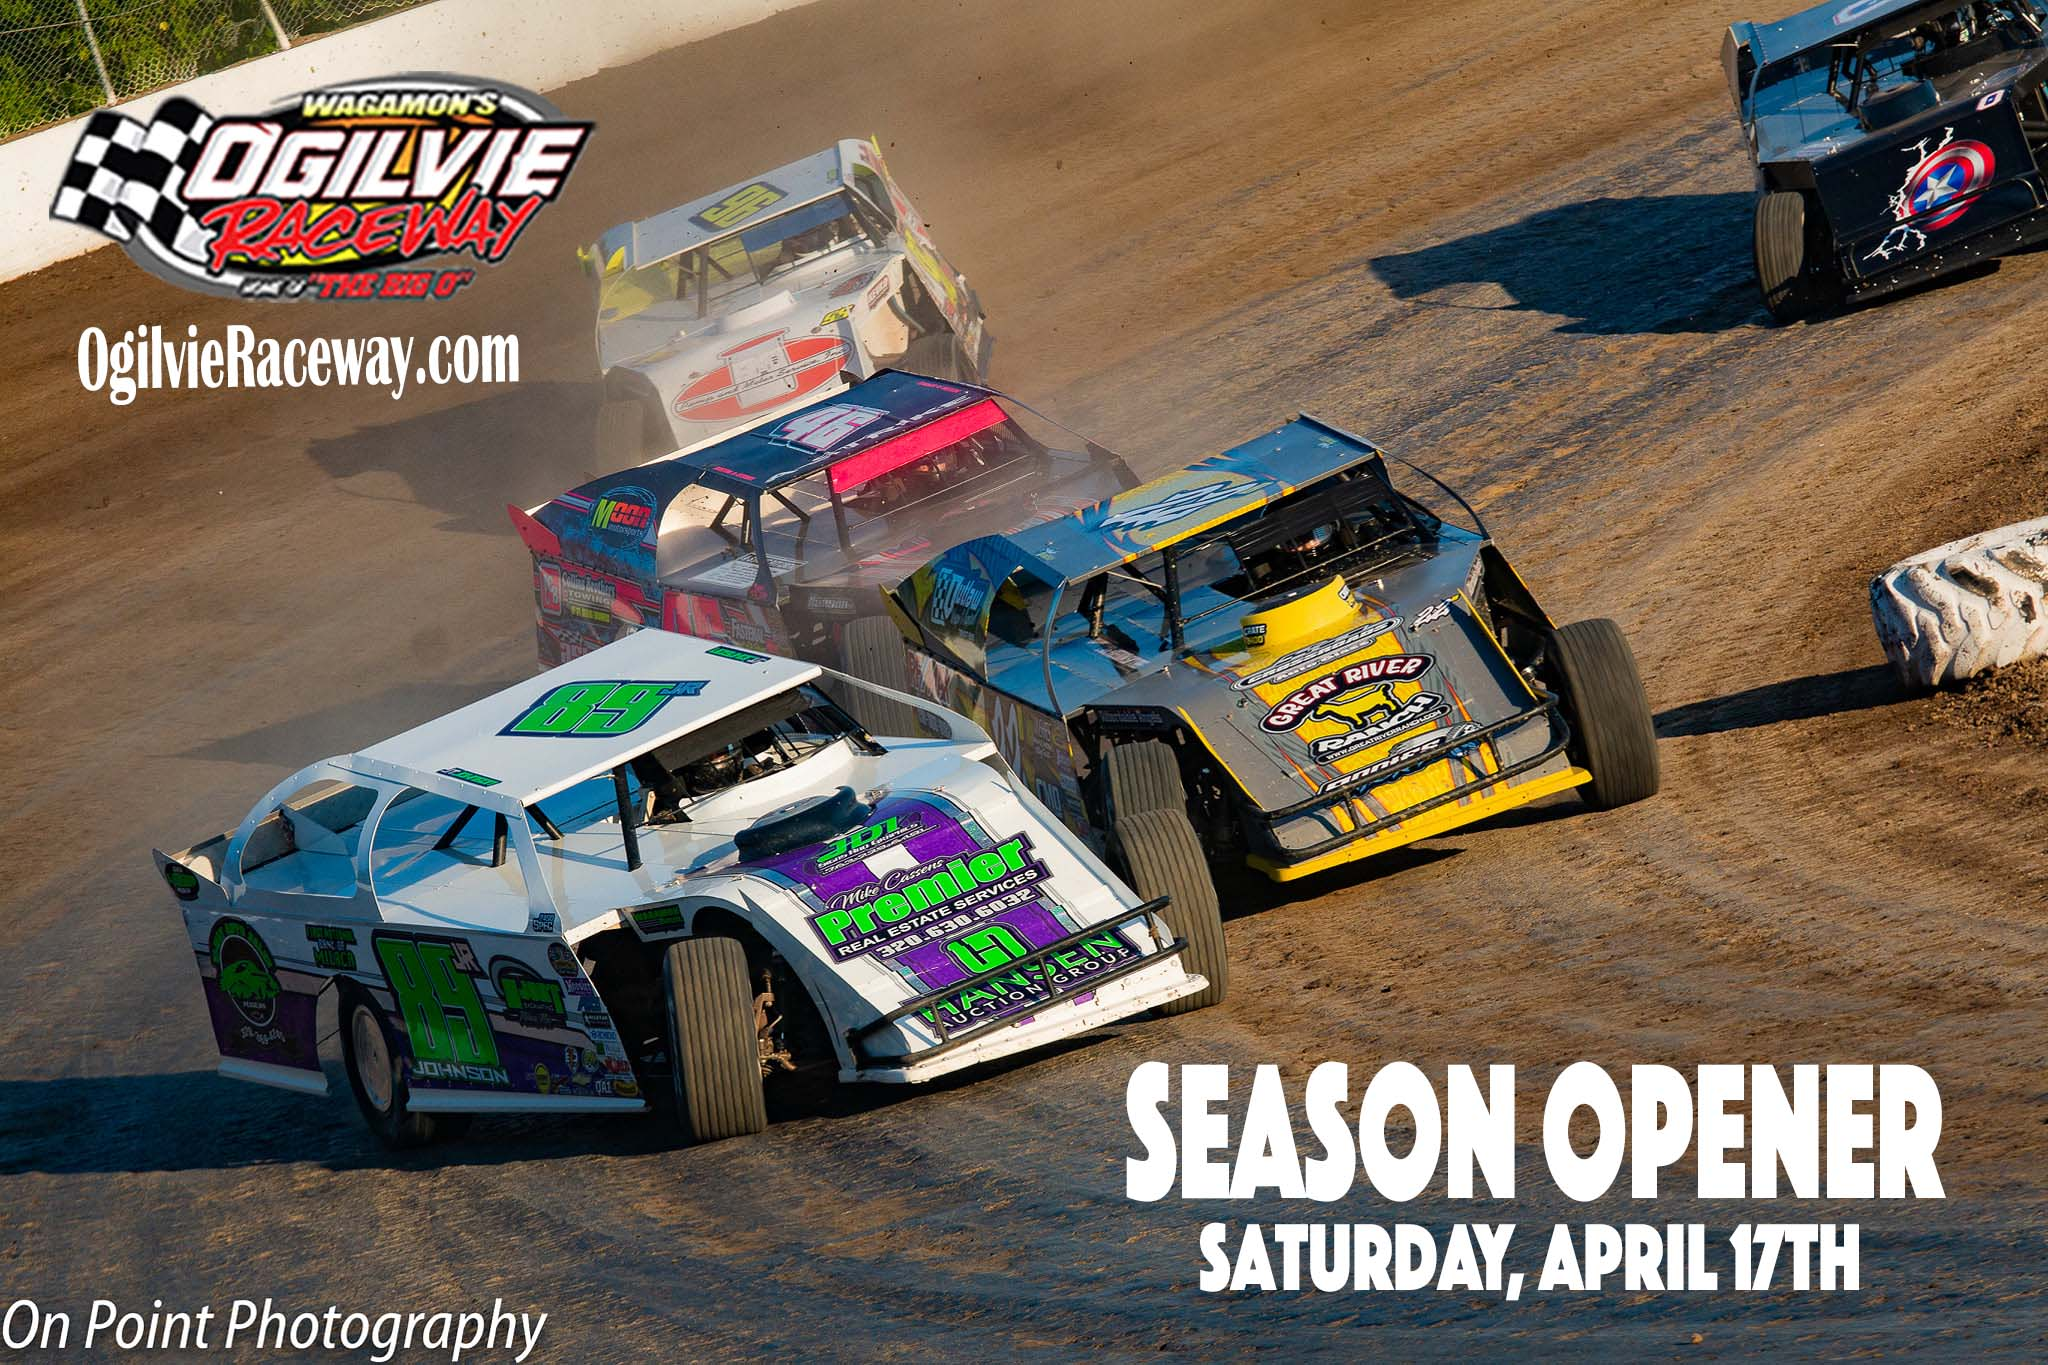 April 10th CANCELED due to rain – Opener now on April 17th